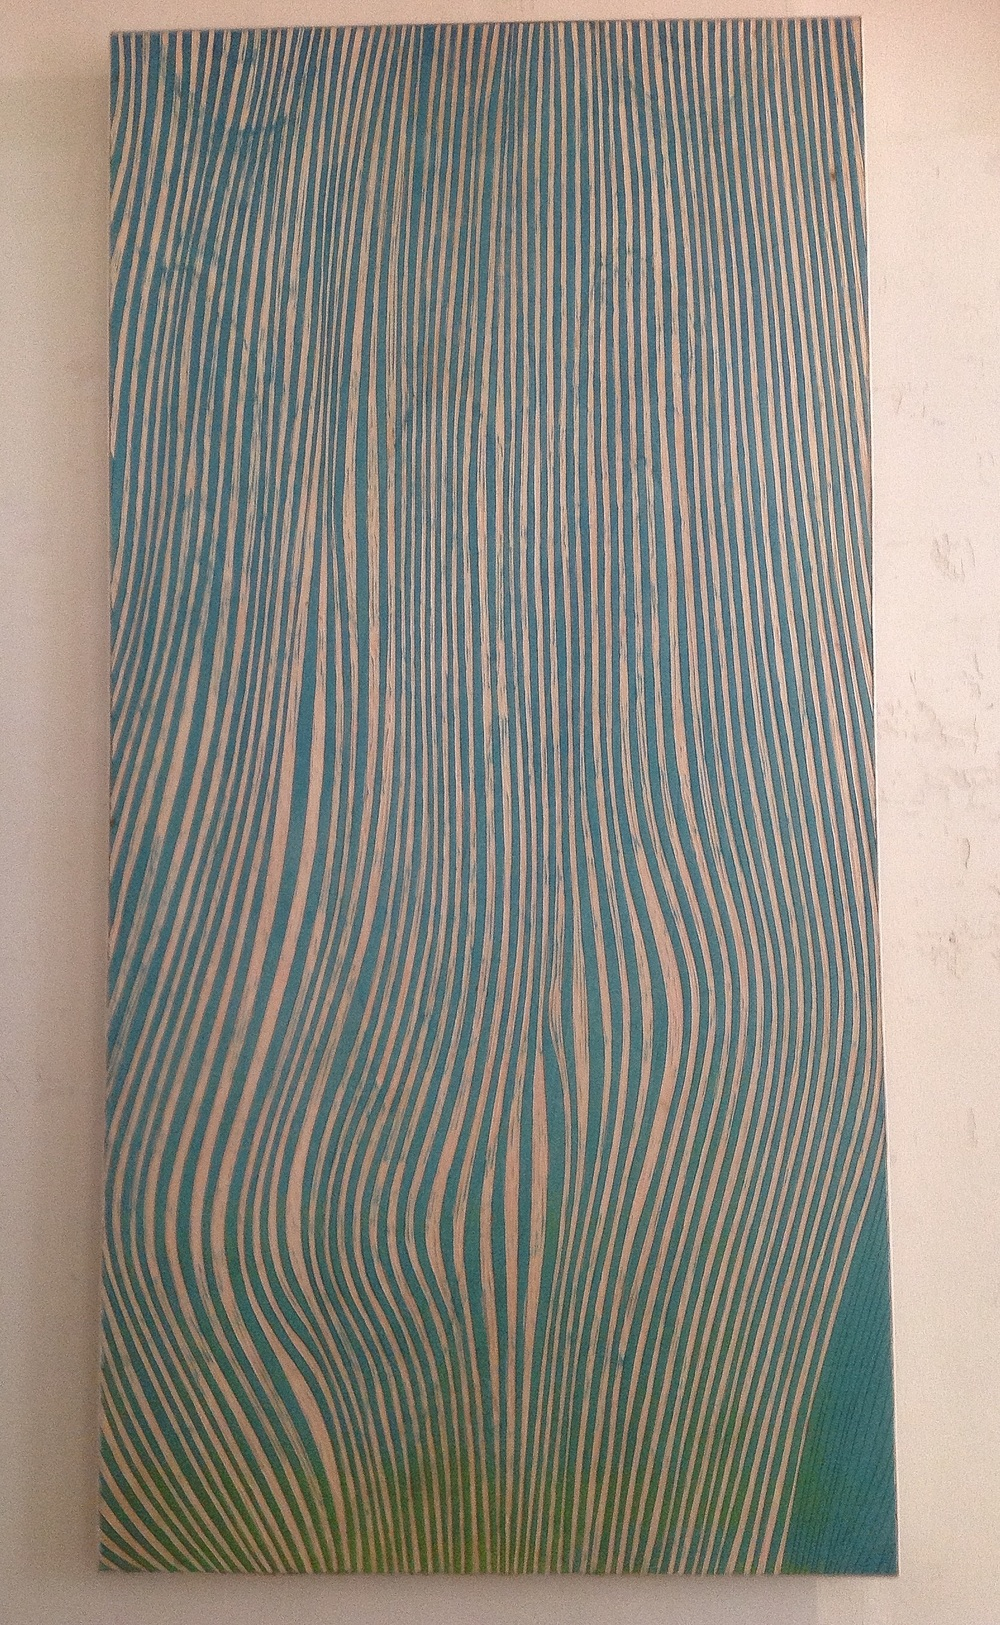 Cut 100x200  panel wood  still available at my gallery